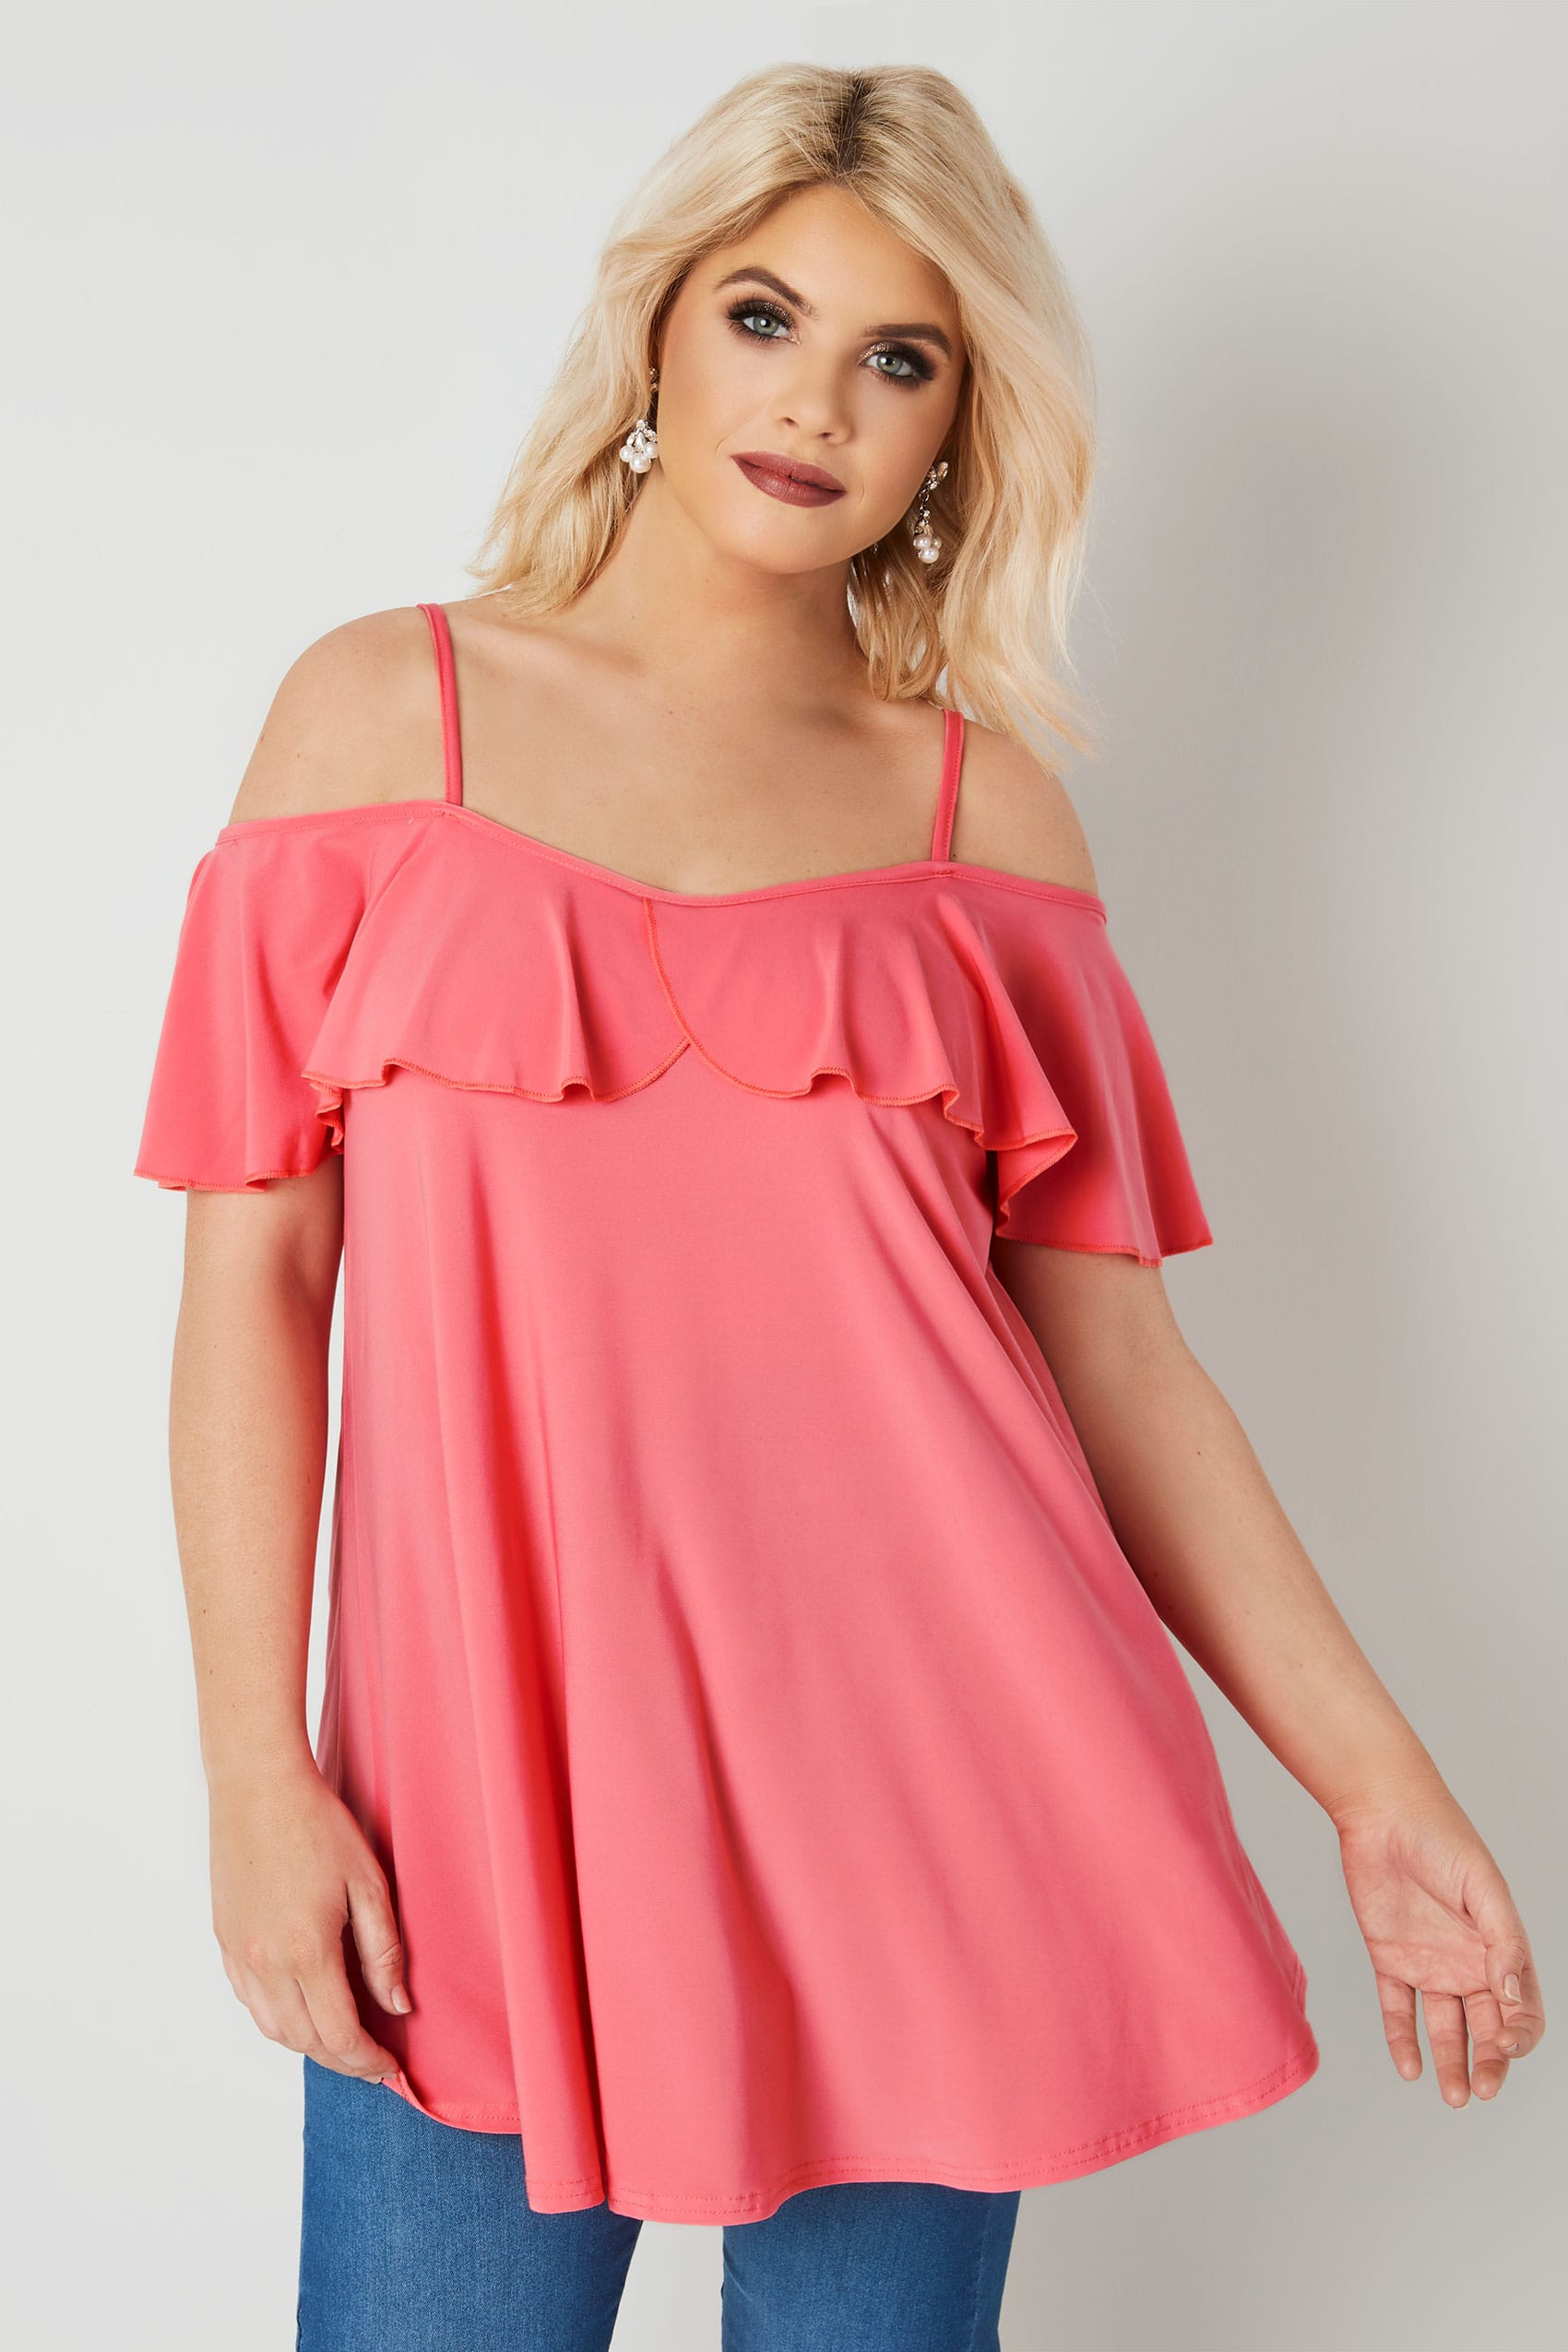 fff79bbaa1d8b2 Coral Pink Slinky Jersey Frill Cold Shoulder Top, Plus size 16 to 36